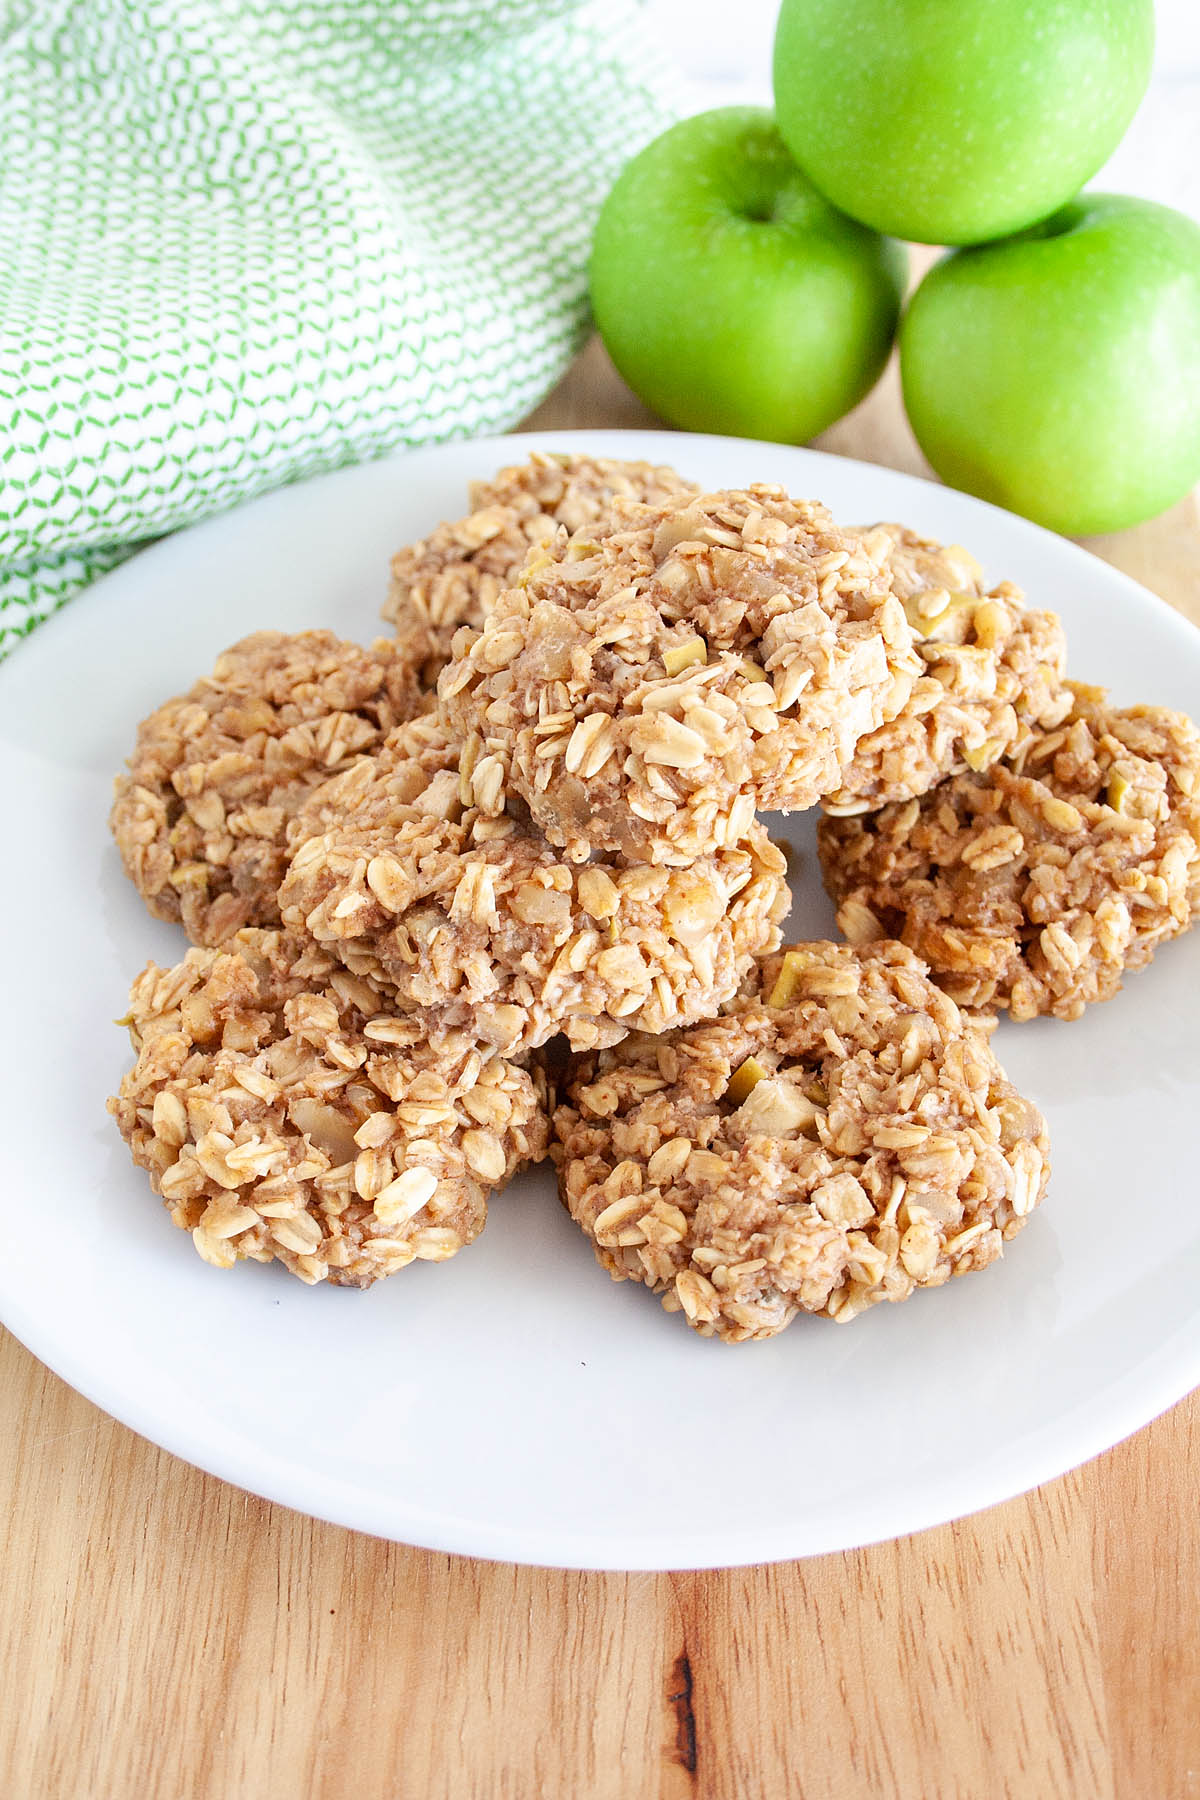 Apple Oatmeal Cookies on plate with Granny Smith apples in the background.